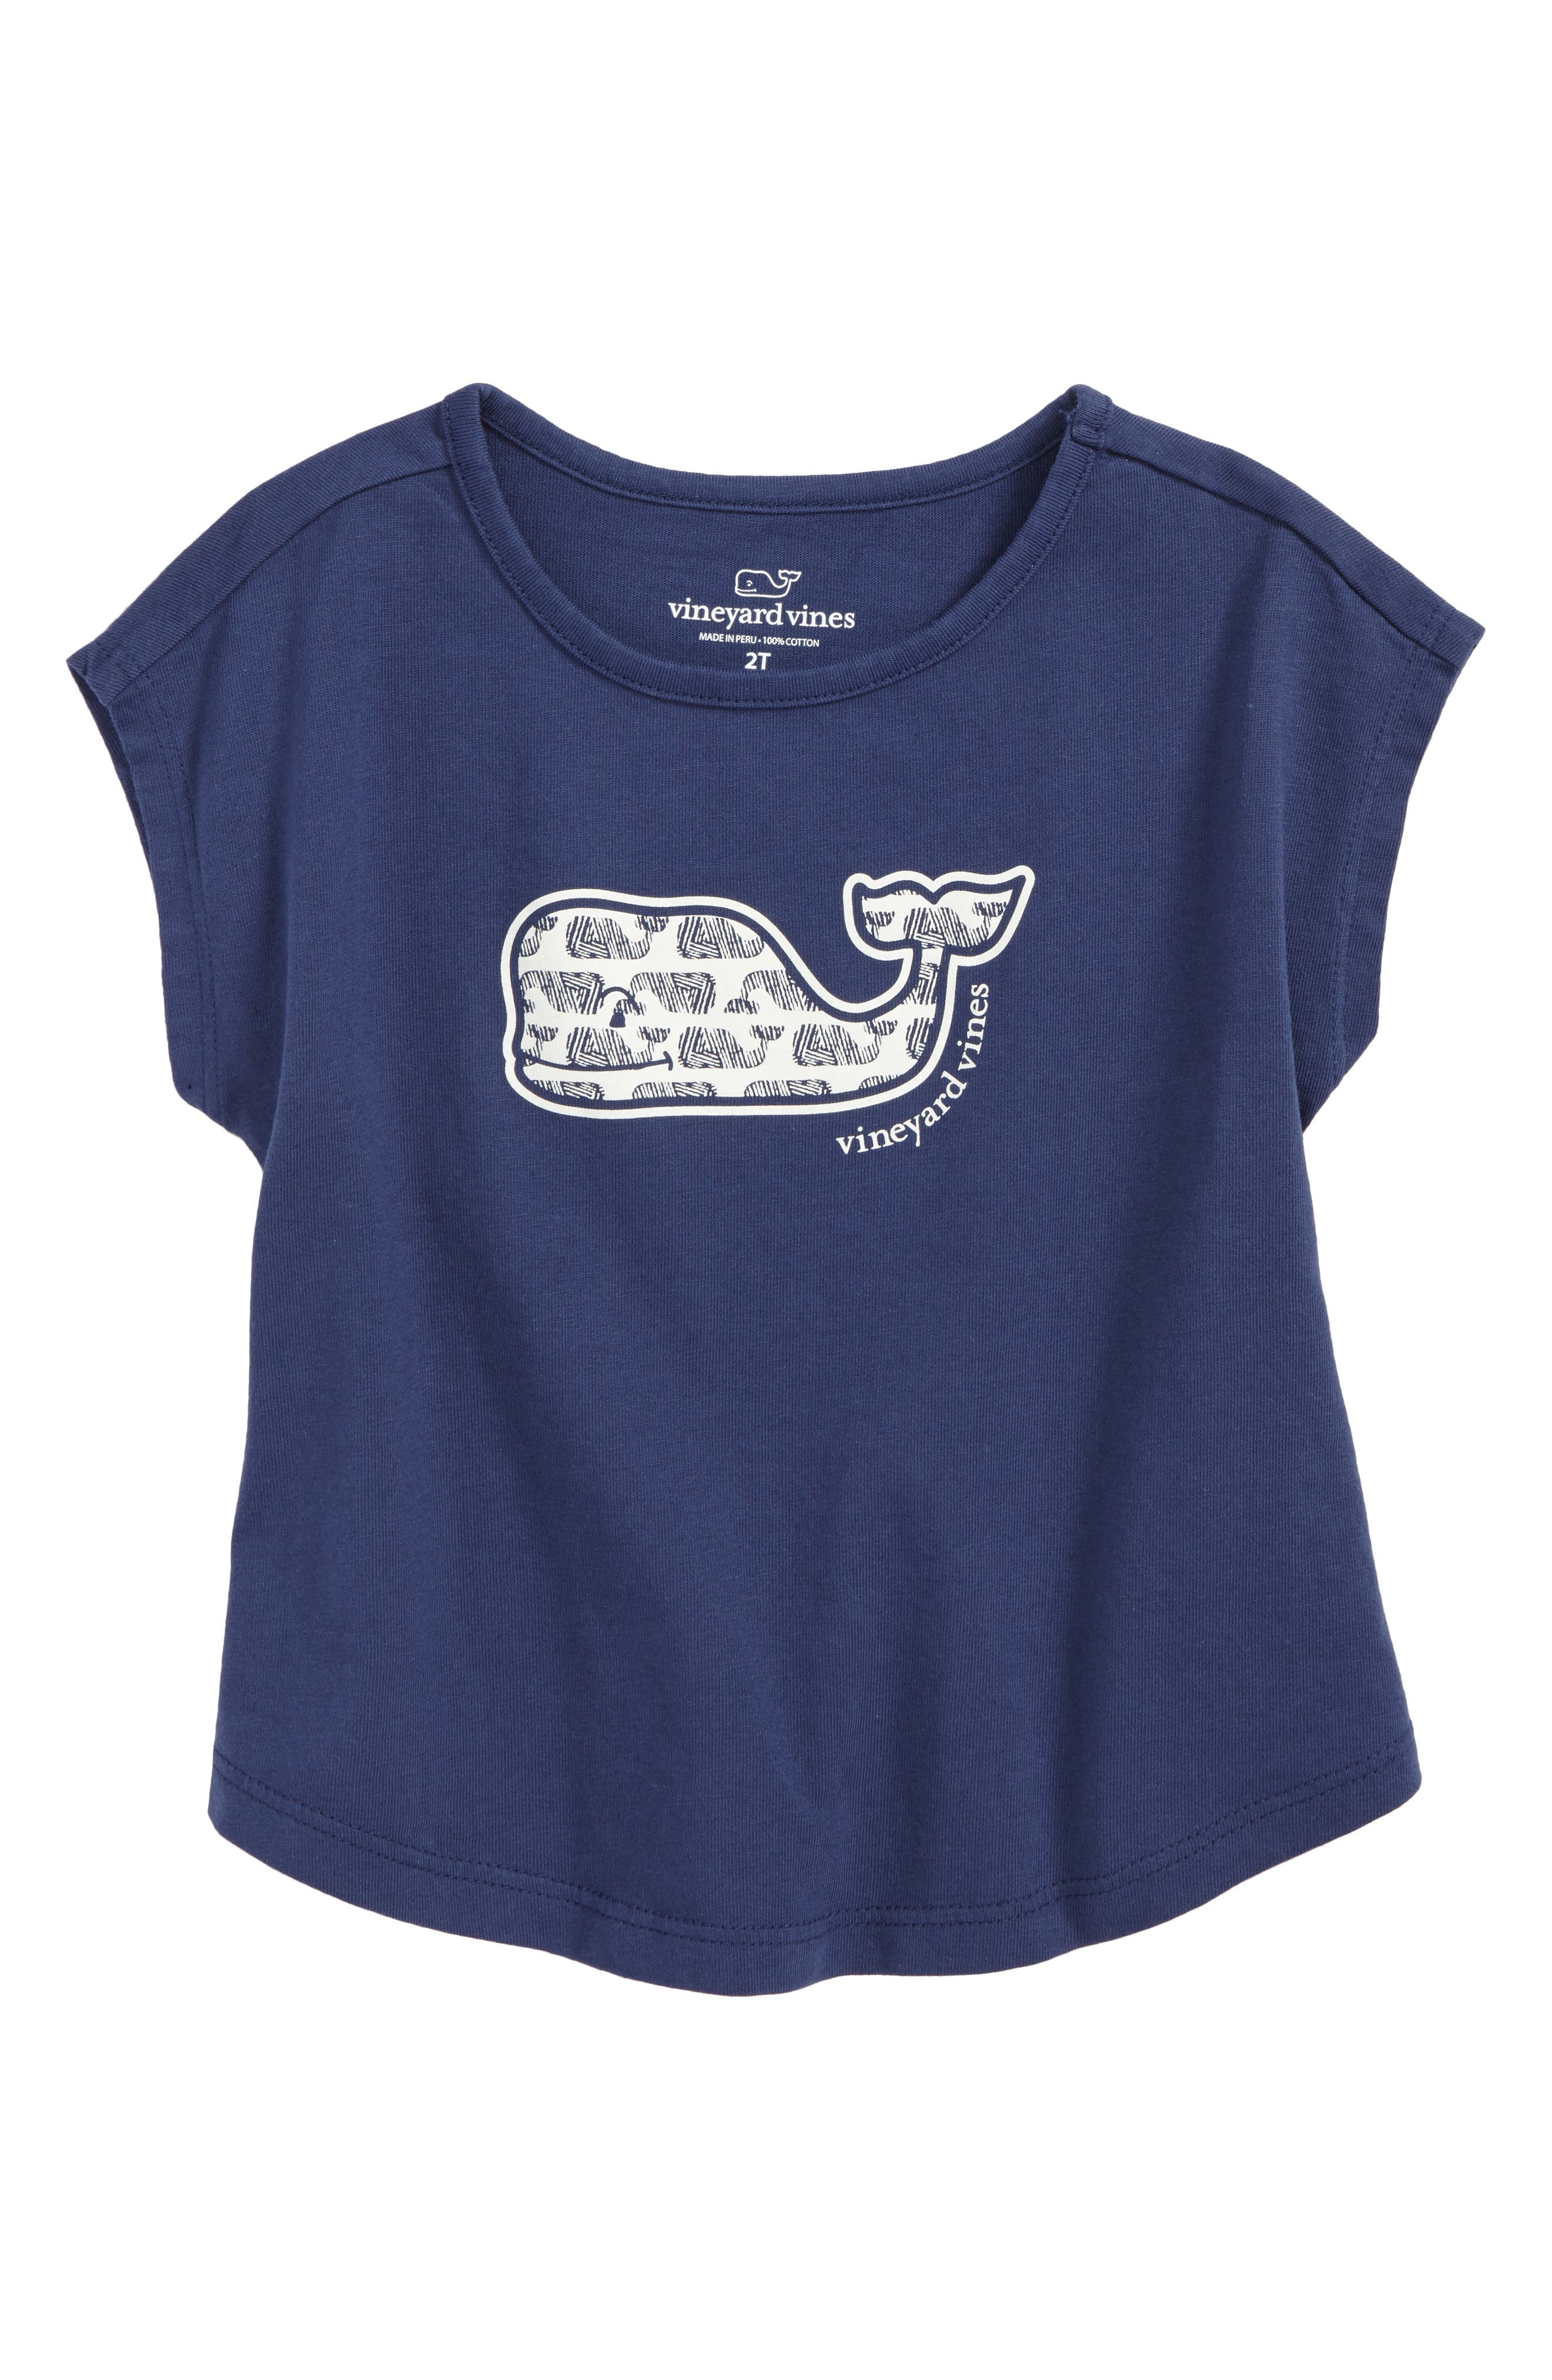 vineyard vines Etched Whale Swing Tee (Toddler Girls)